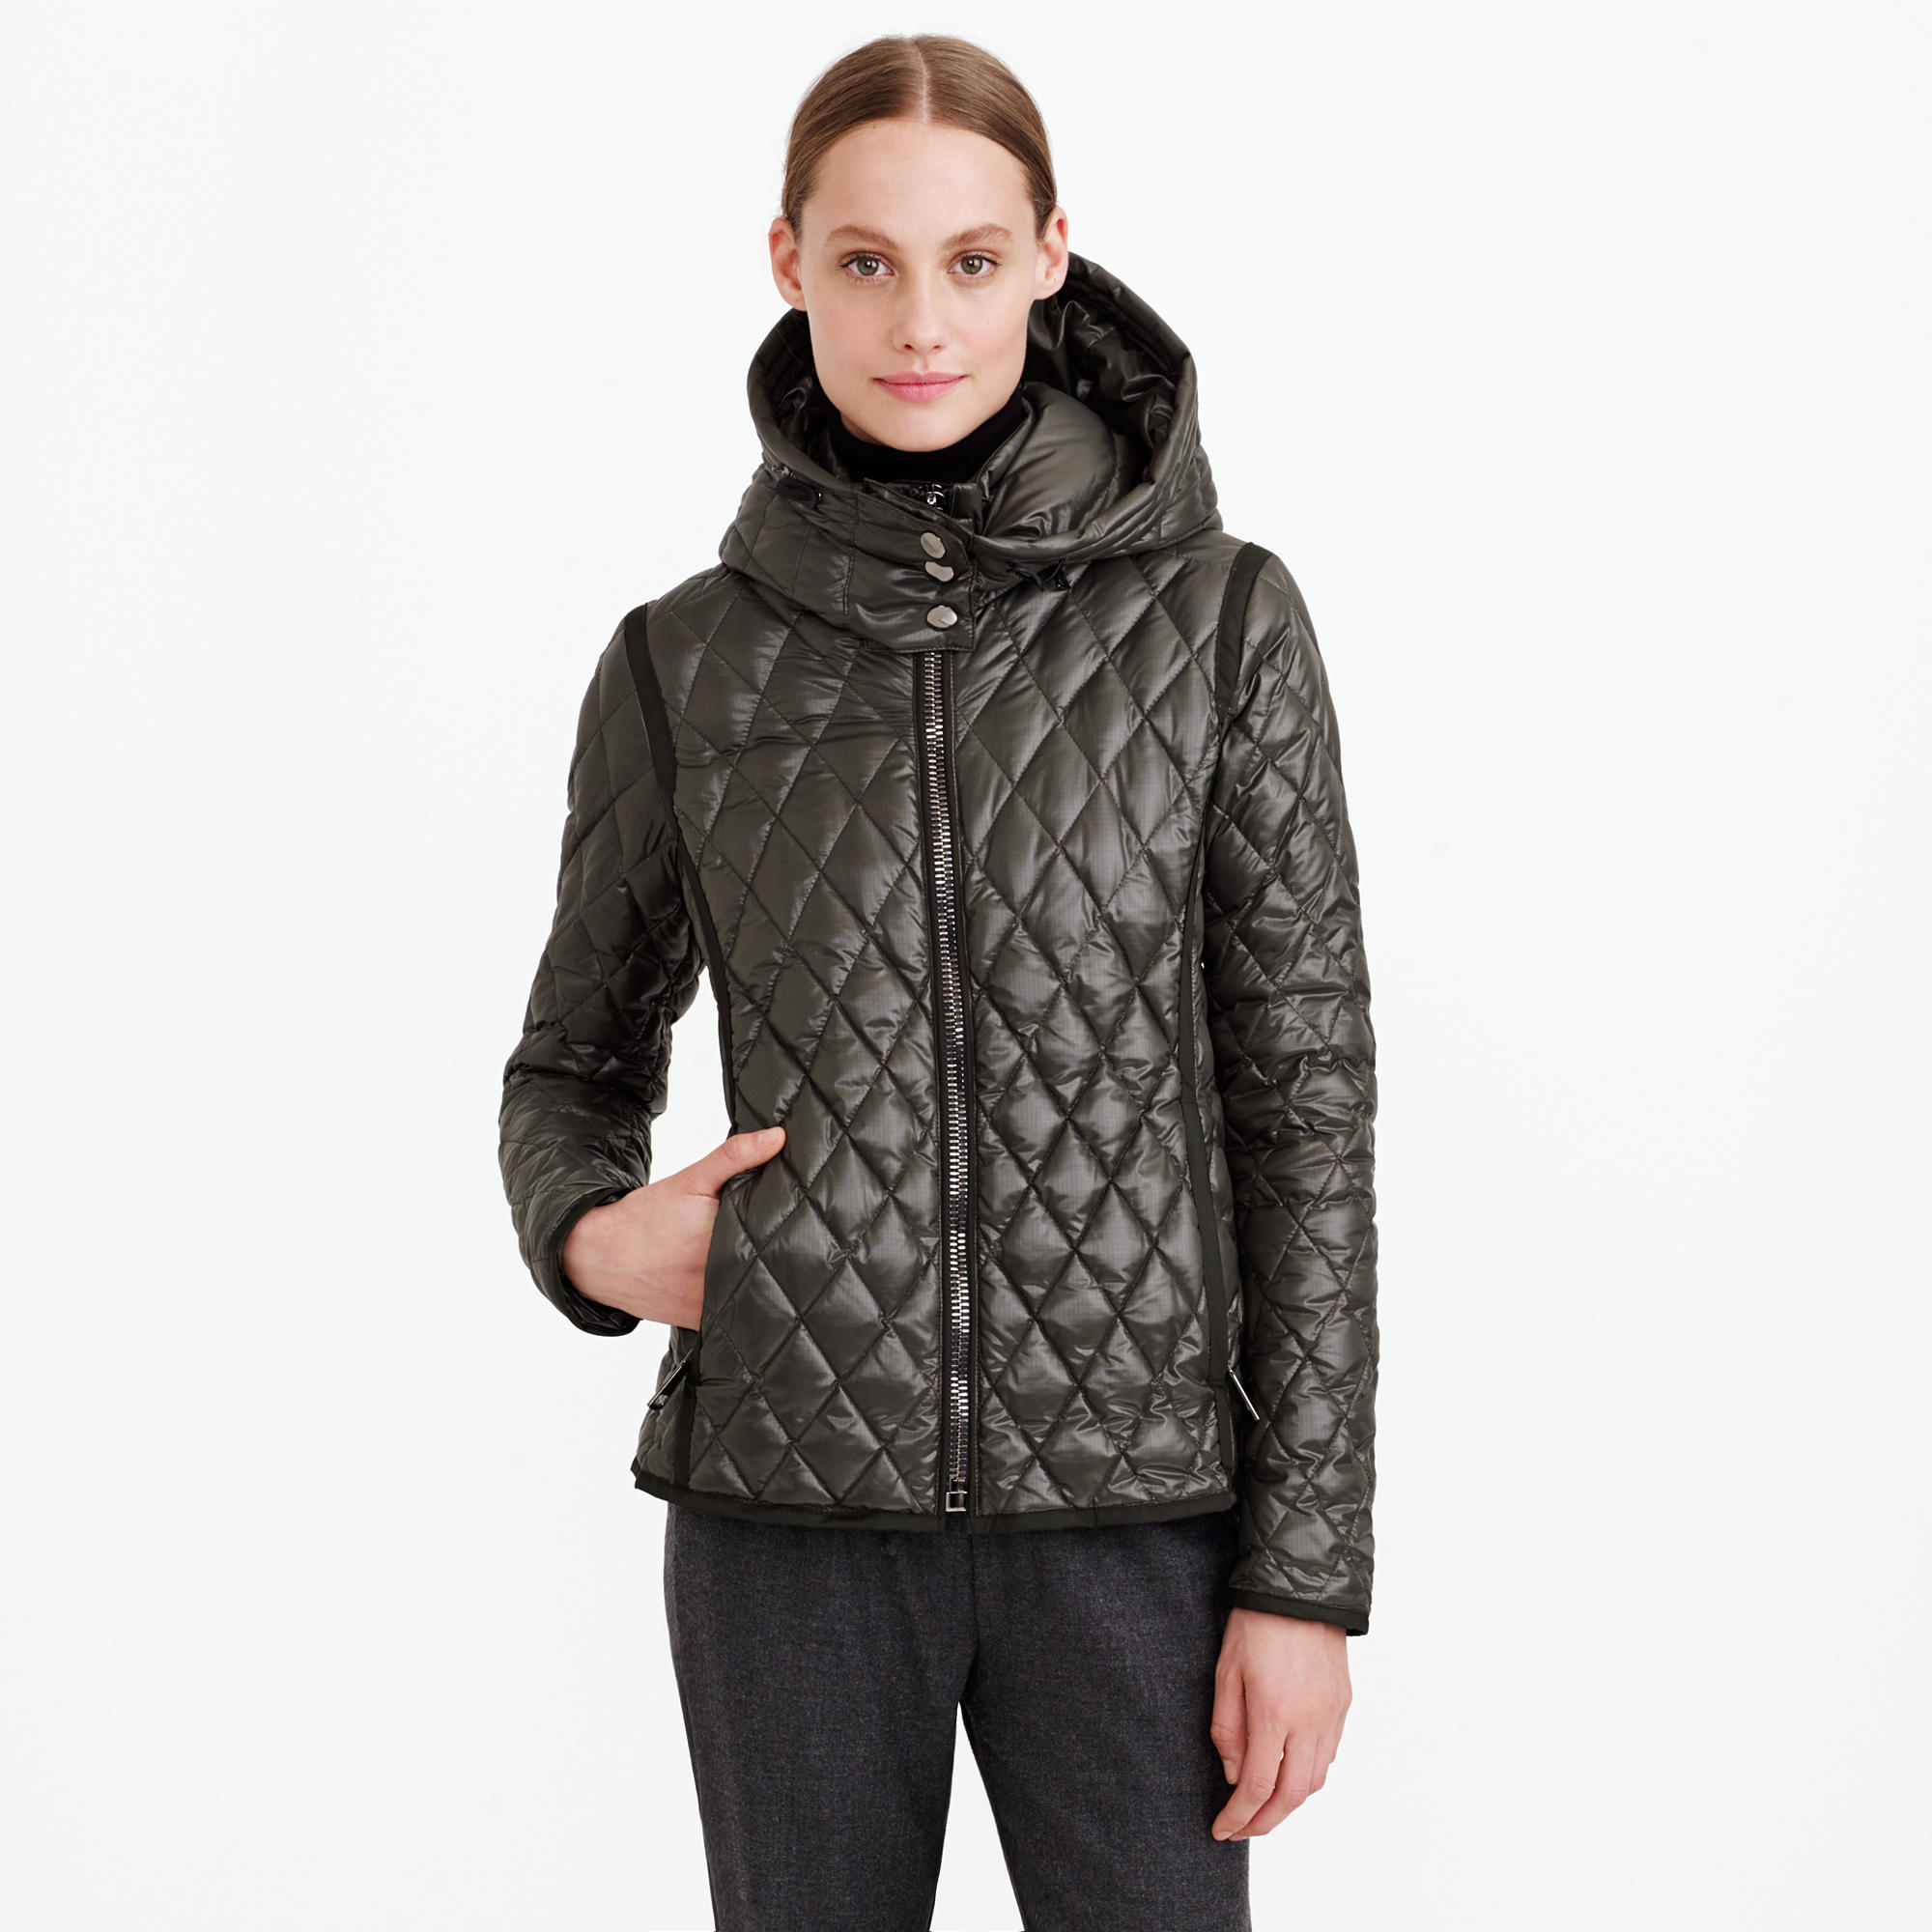 Lyst J Crew Authier Quilted Diamond Jacket In Green